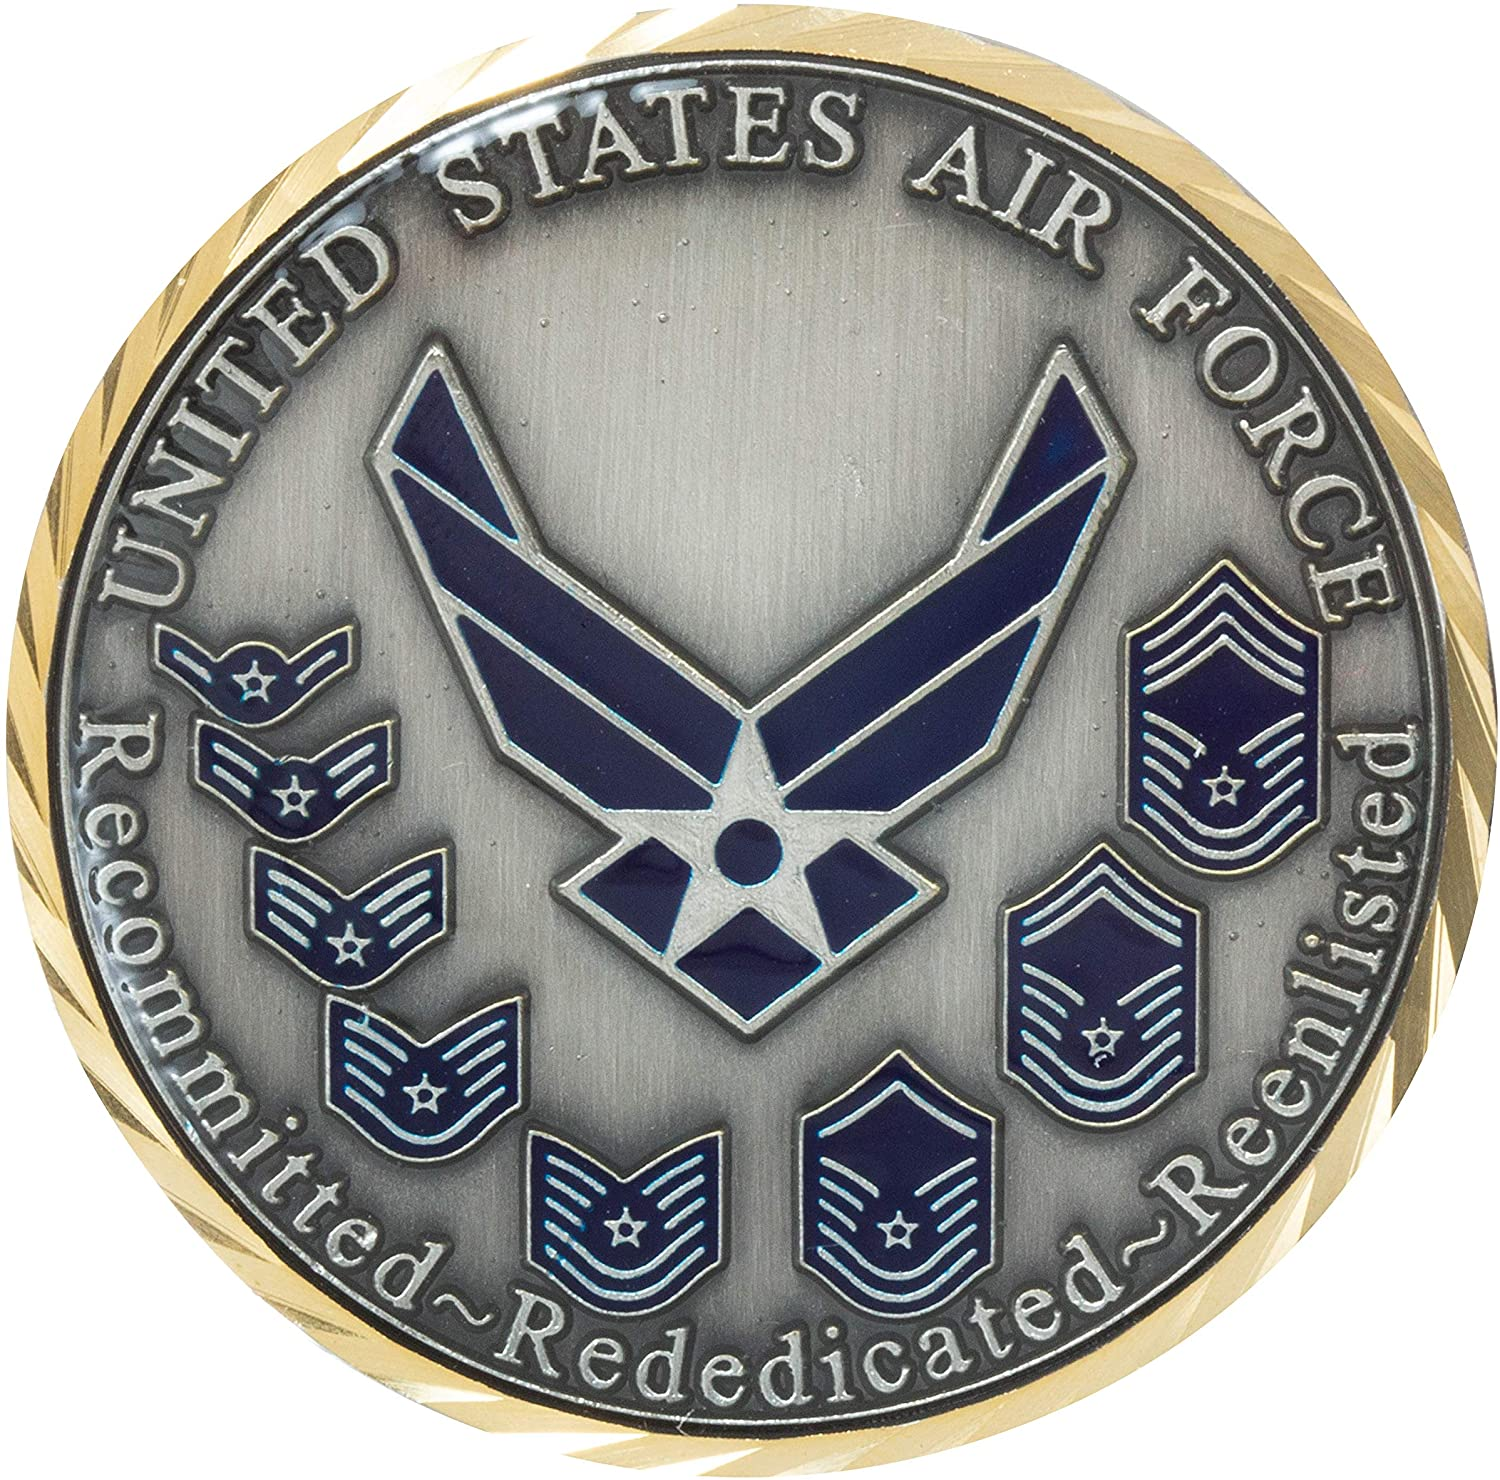 United States Air Force Oath of Enlistment Challenge Coin